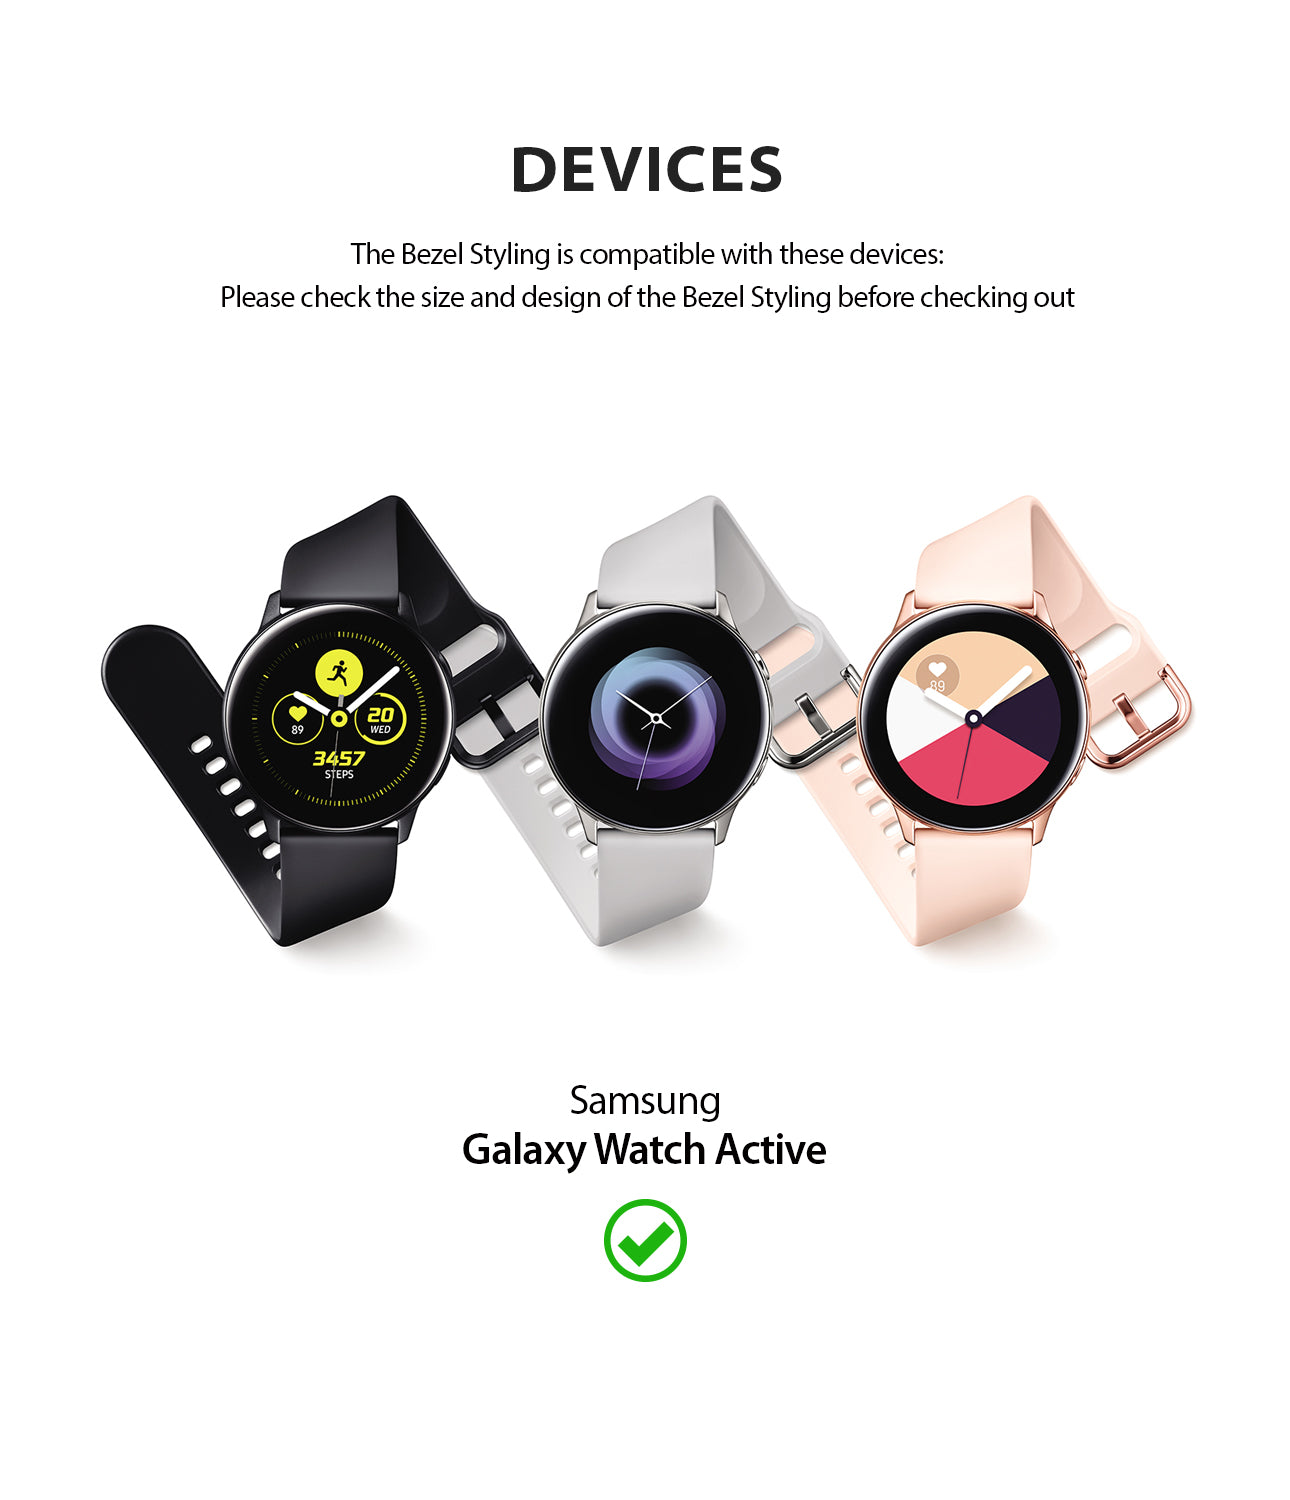 only compatible with samsung galaxy watch active